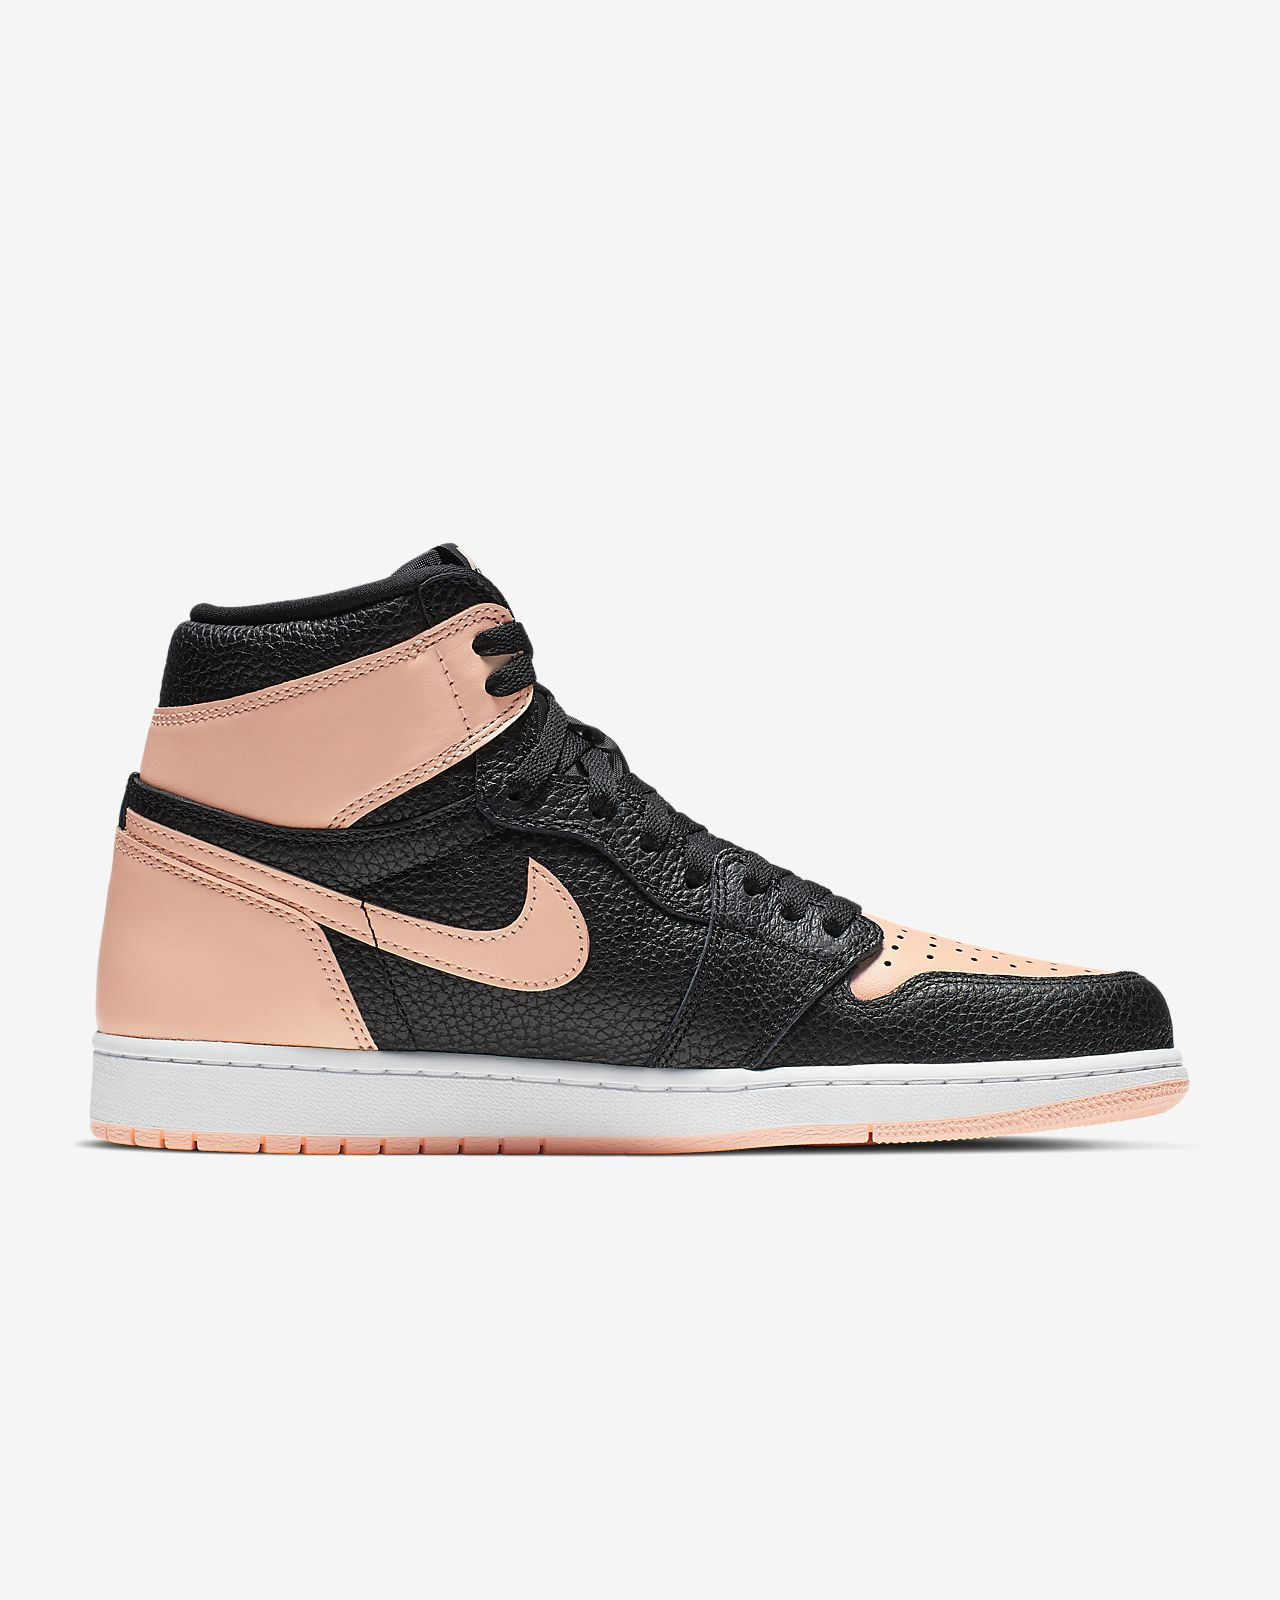 3cf1c1353c Air Jordan 1 Retro High OG Shoe. Nike.com